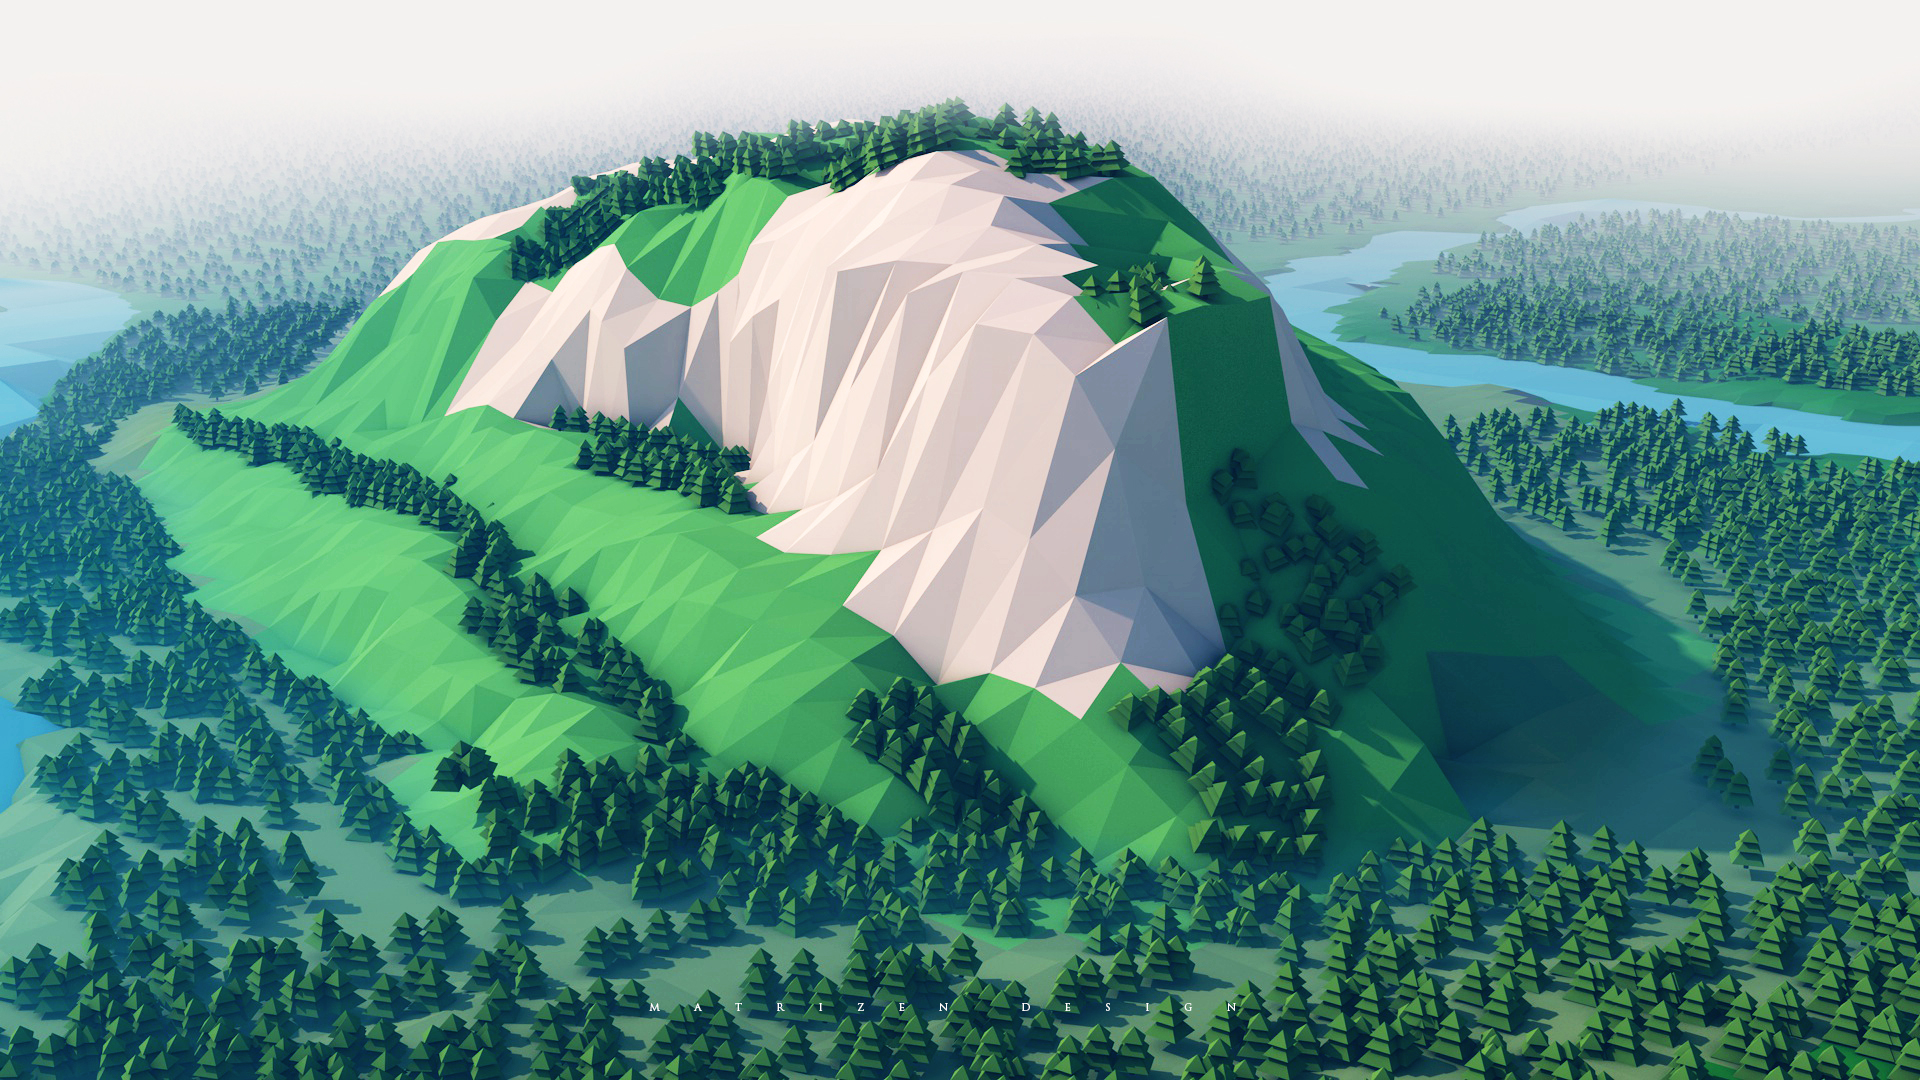 Mountains Minimalism Hd 4k Wallpaper: Mountains Trees Forest 3d Minimalism, Full HD Wallpaper